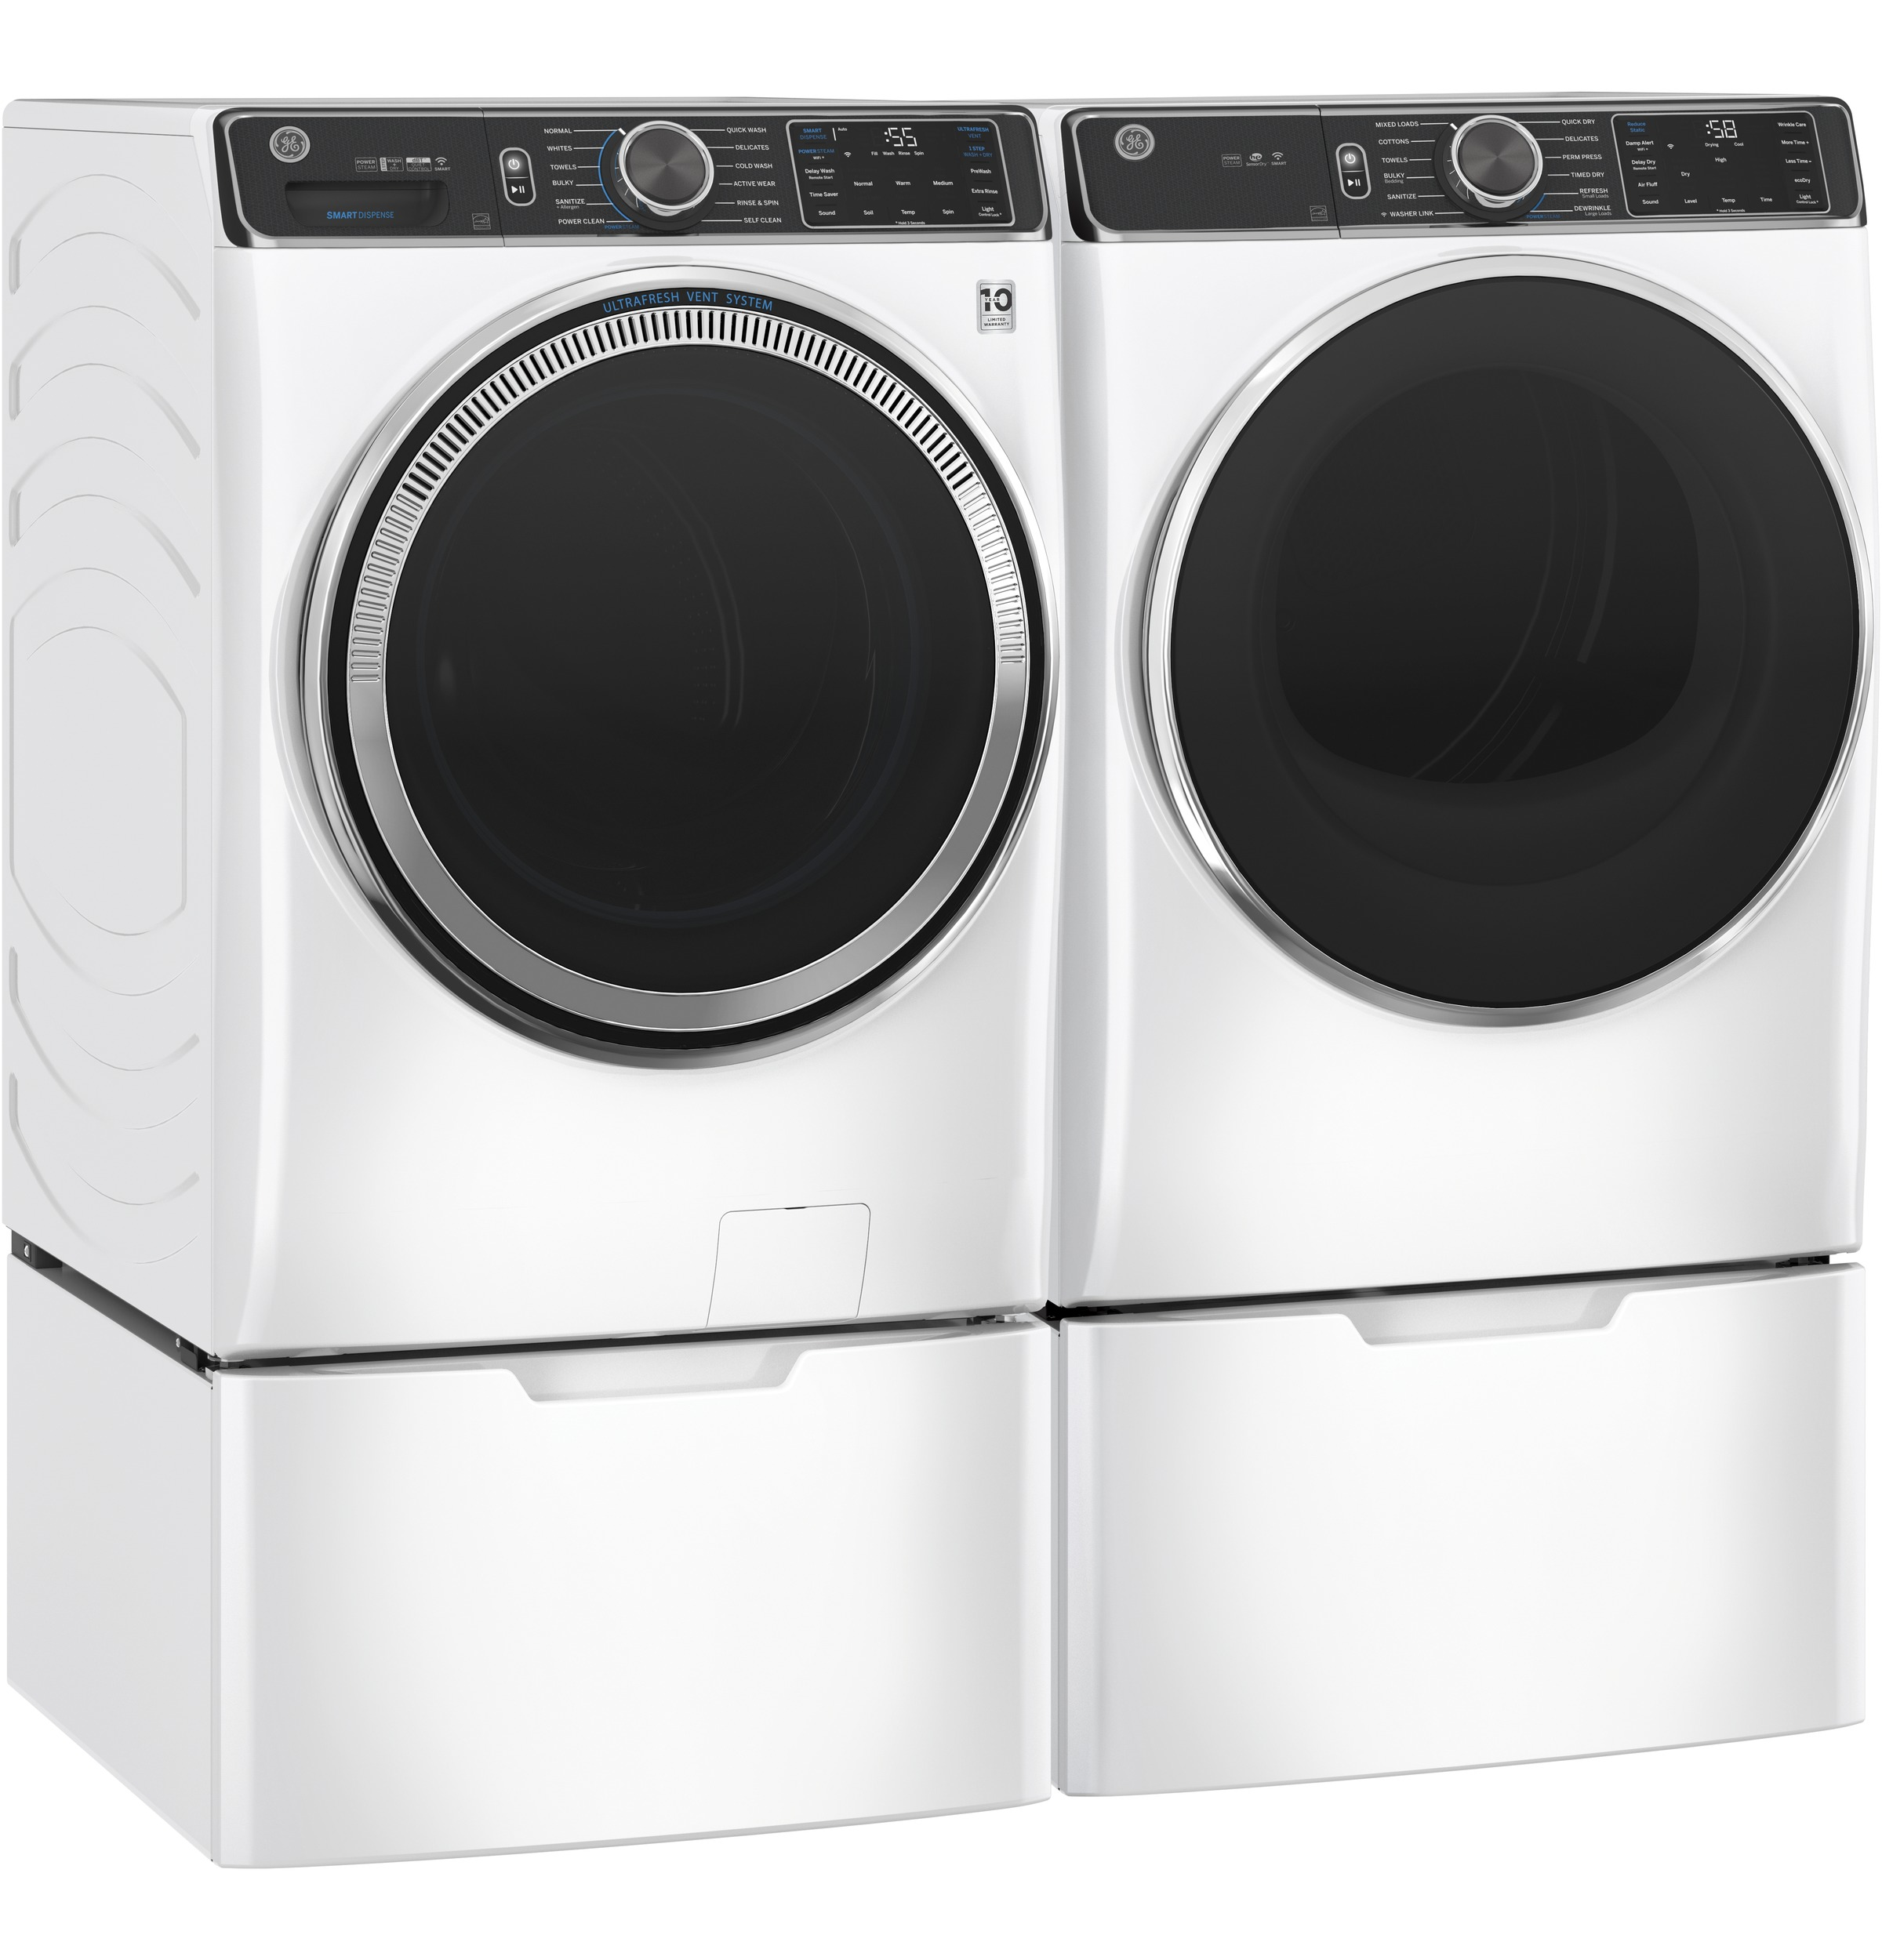 Model: GFD85GSSNWW   GE GE® 7.8 cu. ft. Capacity Smart Front Load Gas Dryer with Steam and Sanitize Cycle